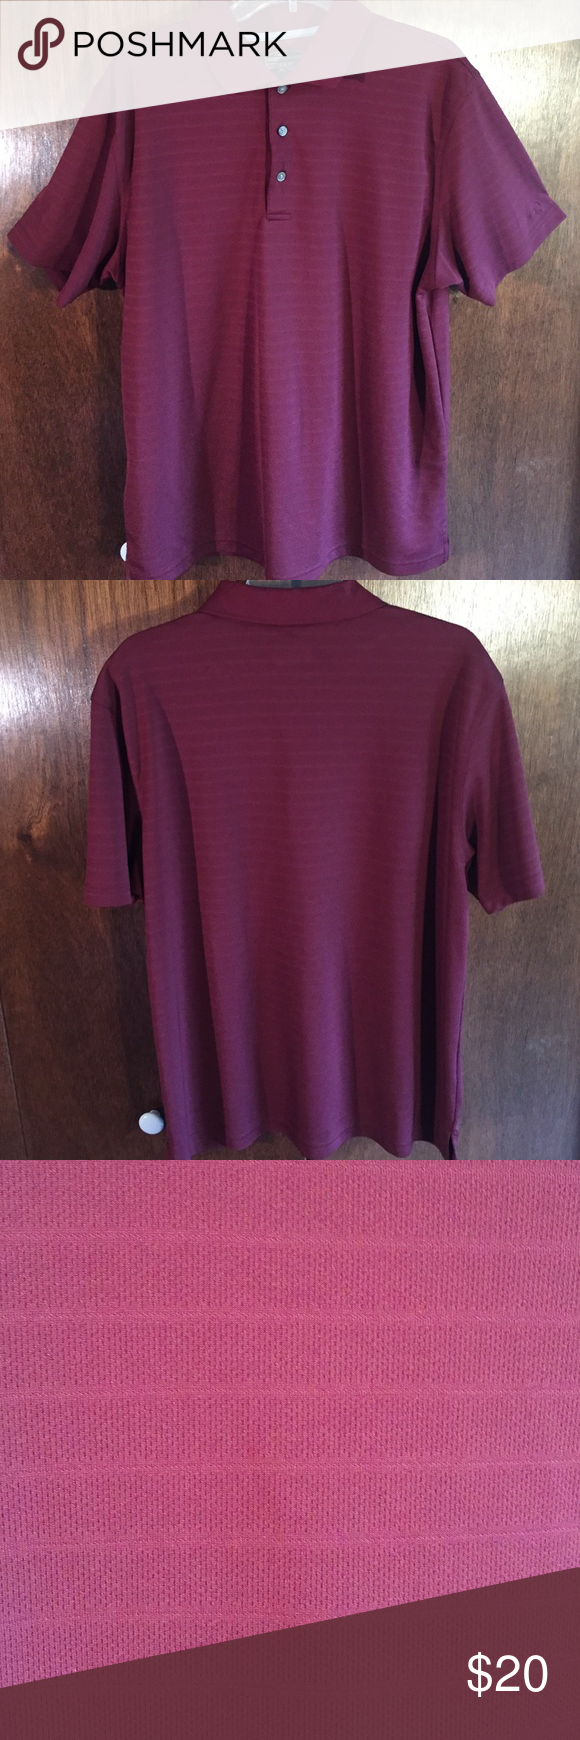 Men's Golf Polo Maroon men's golf polo from Kohl's. Horizontal stripes in same maroon color. Good condition. Great for a golf outing or nice event. Shirts Polos